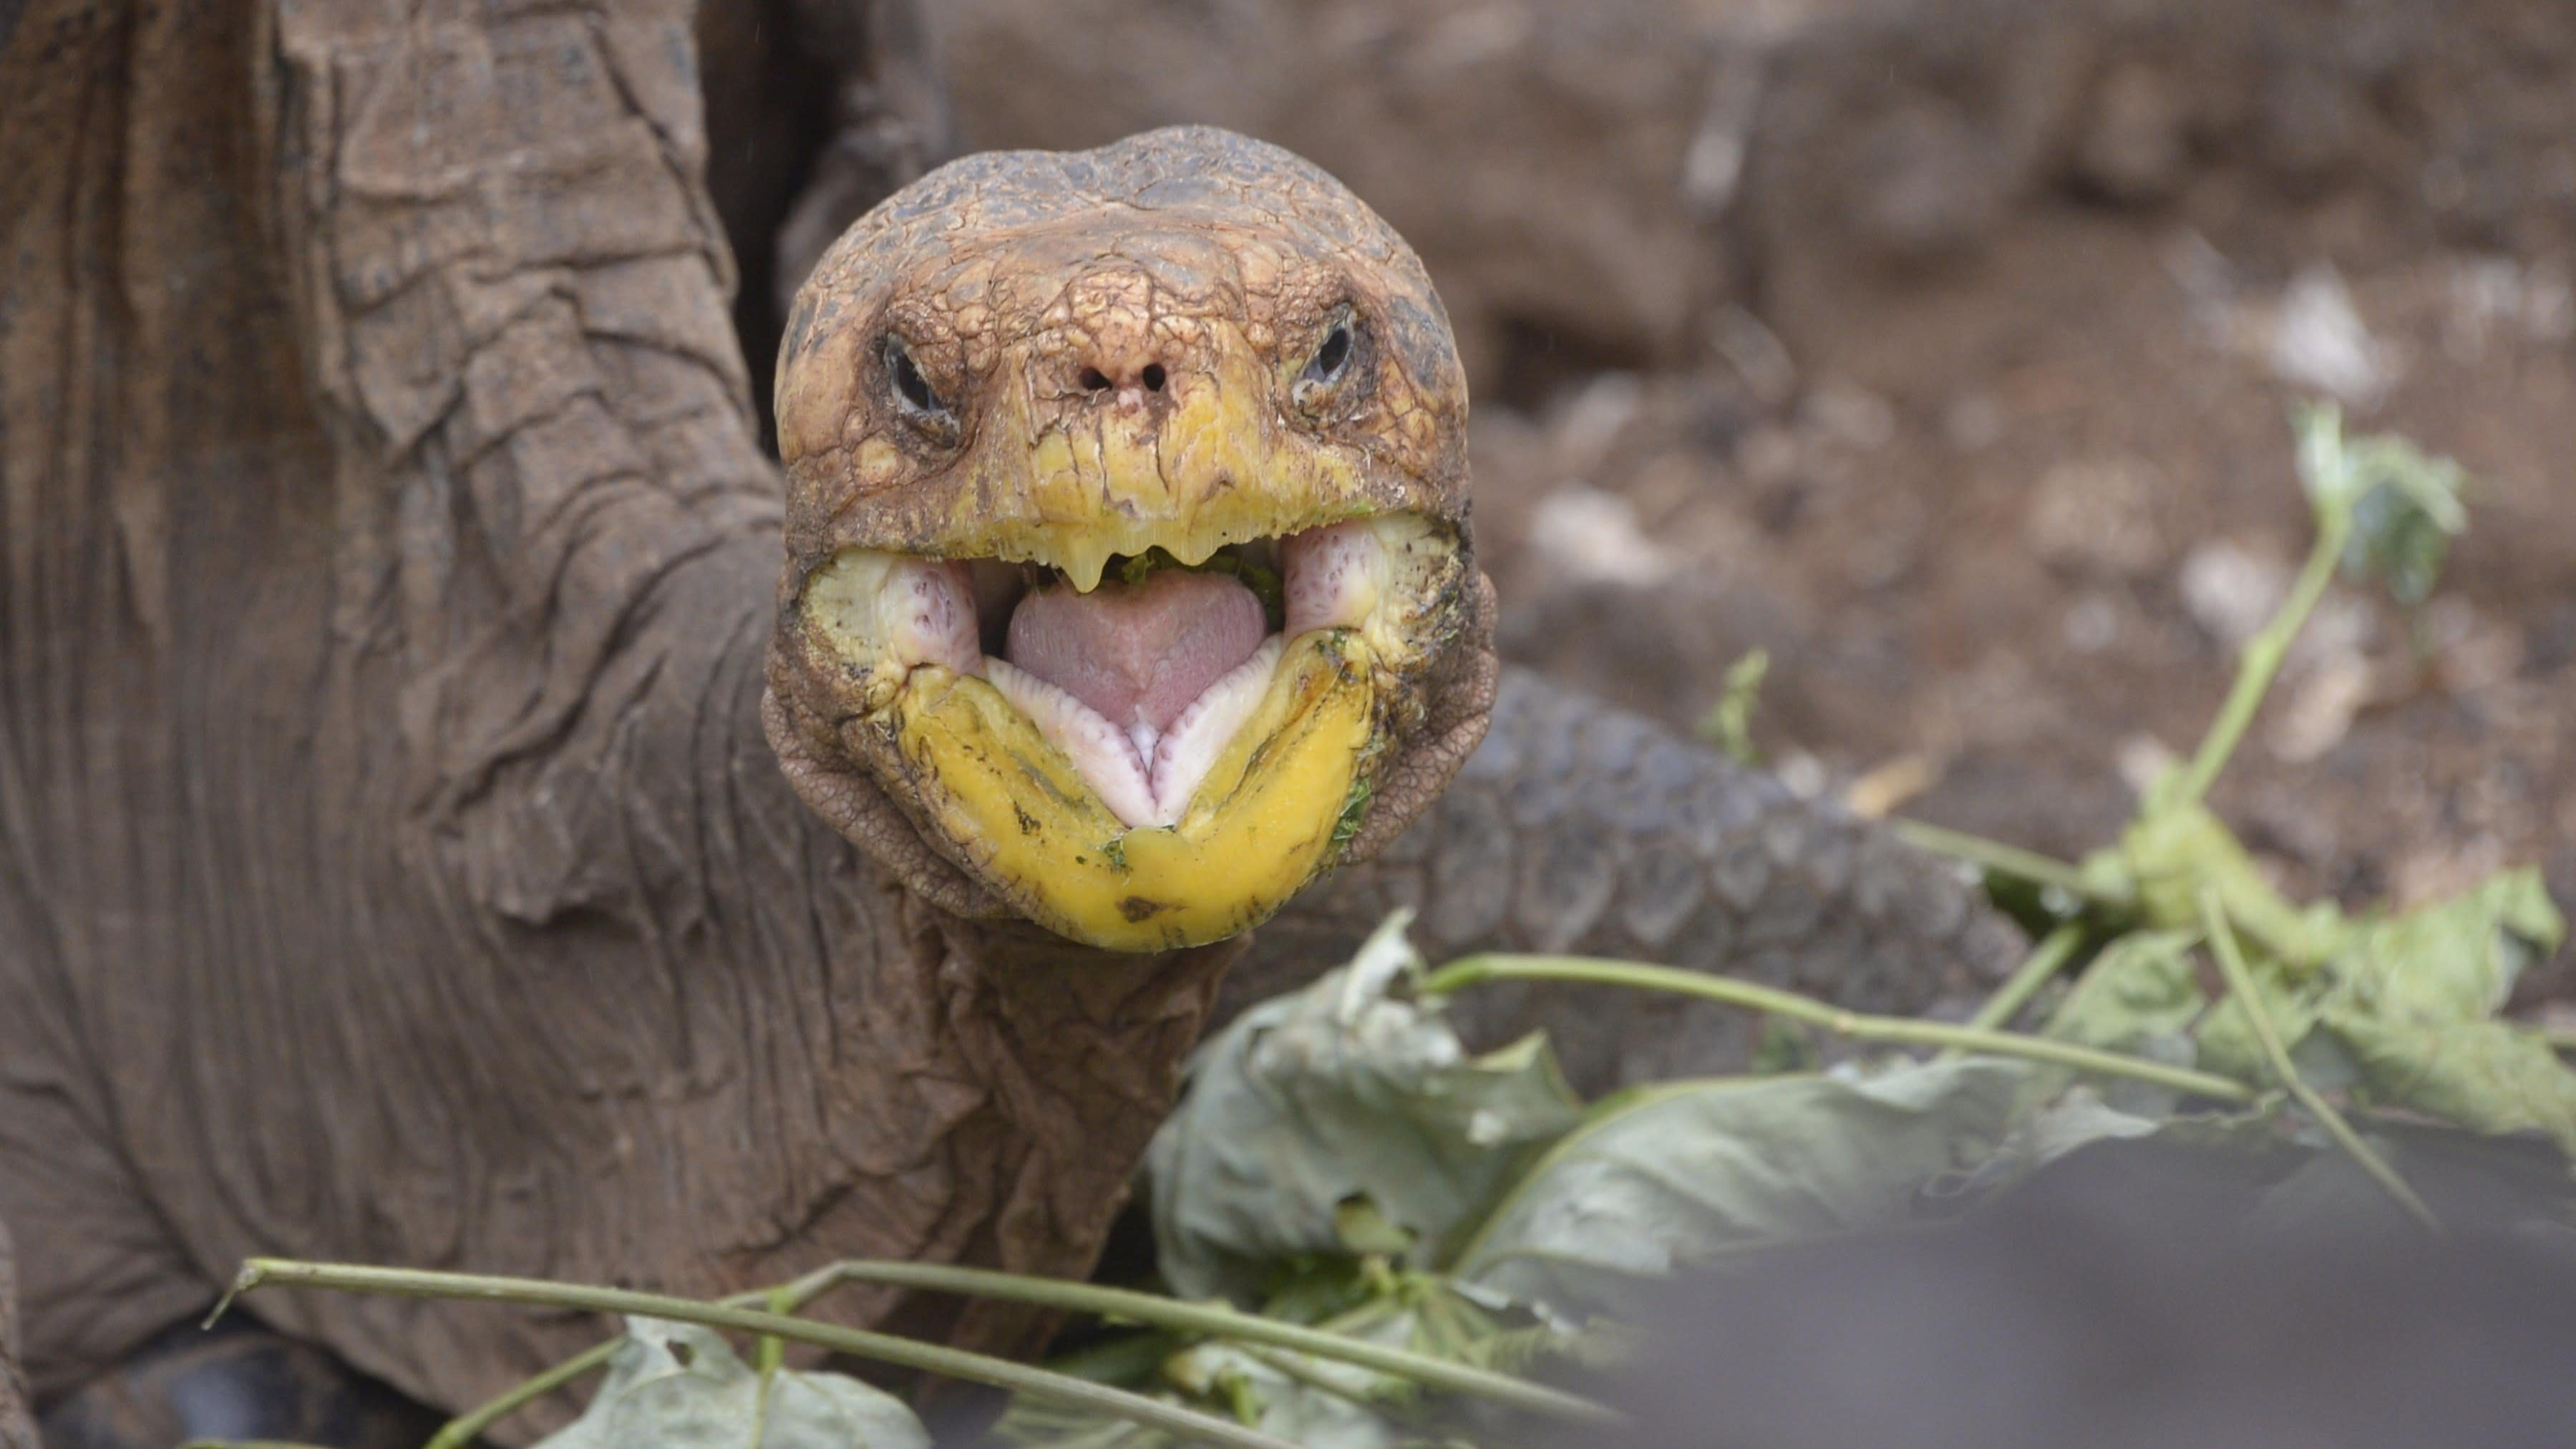 After Saving A Species Through Sheer Horniness, This Tortoise Is Heading Home